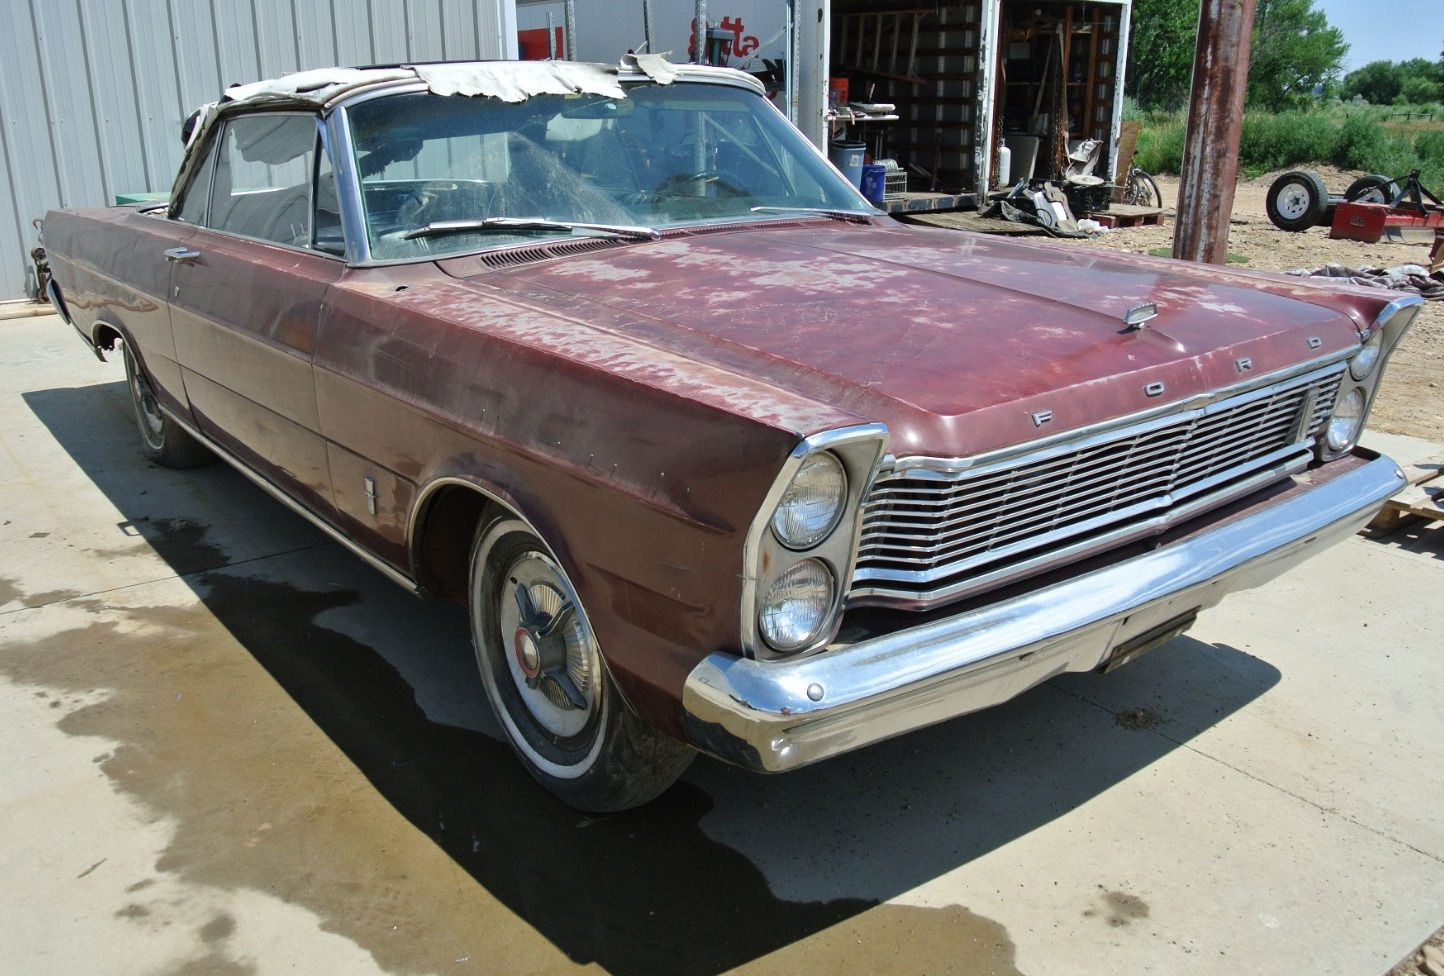 Muscle Cars List >> 4-Speed Drop Top: 1965 Ford Galaxie 500 XL